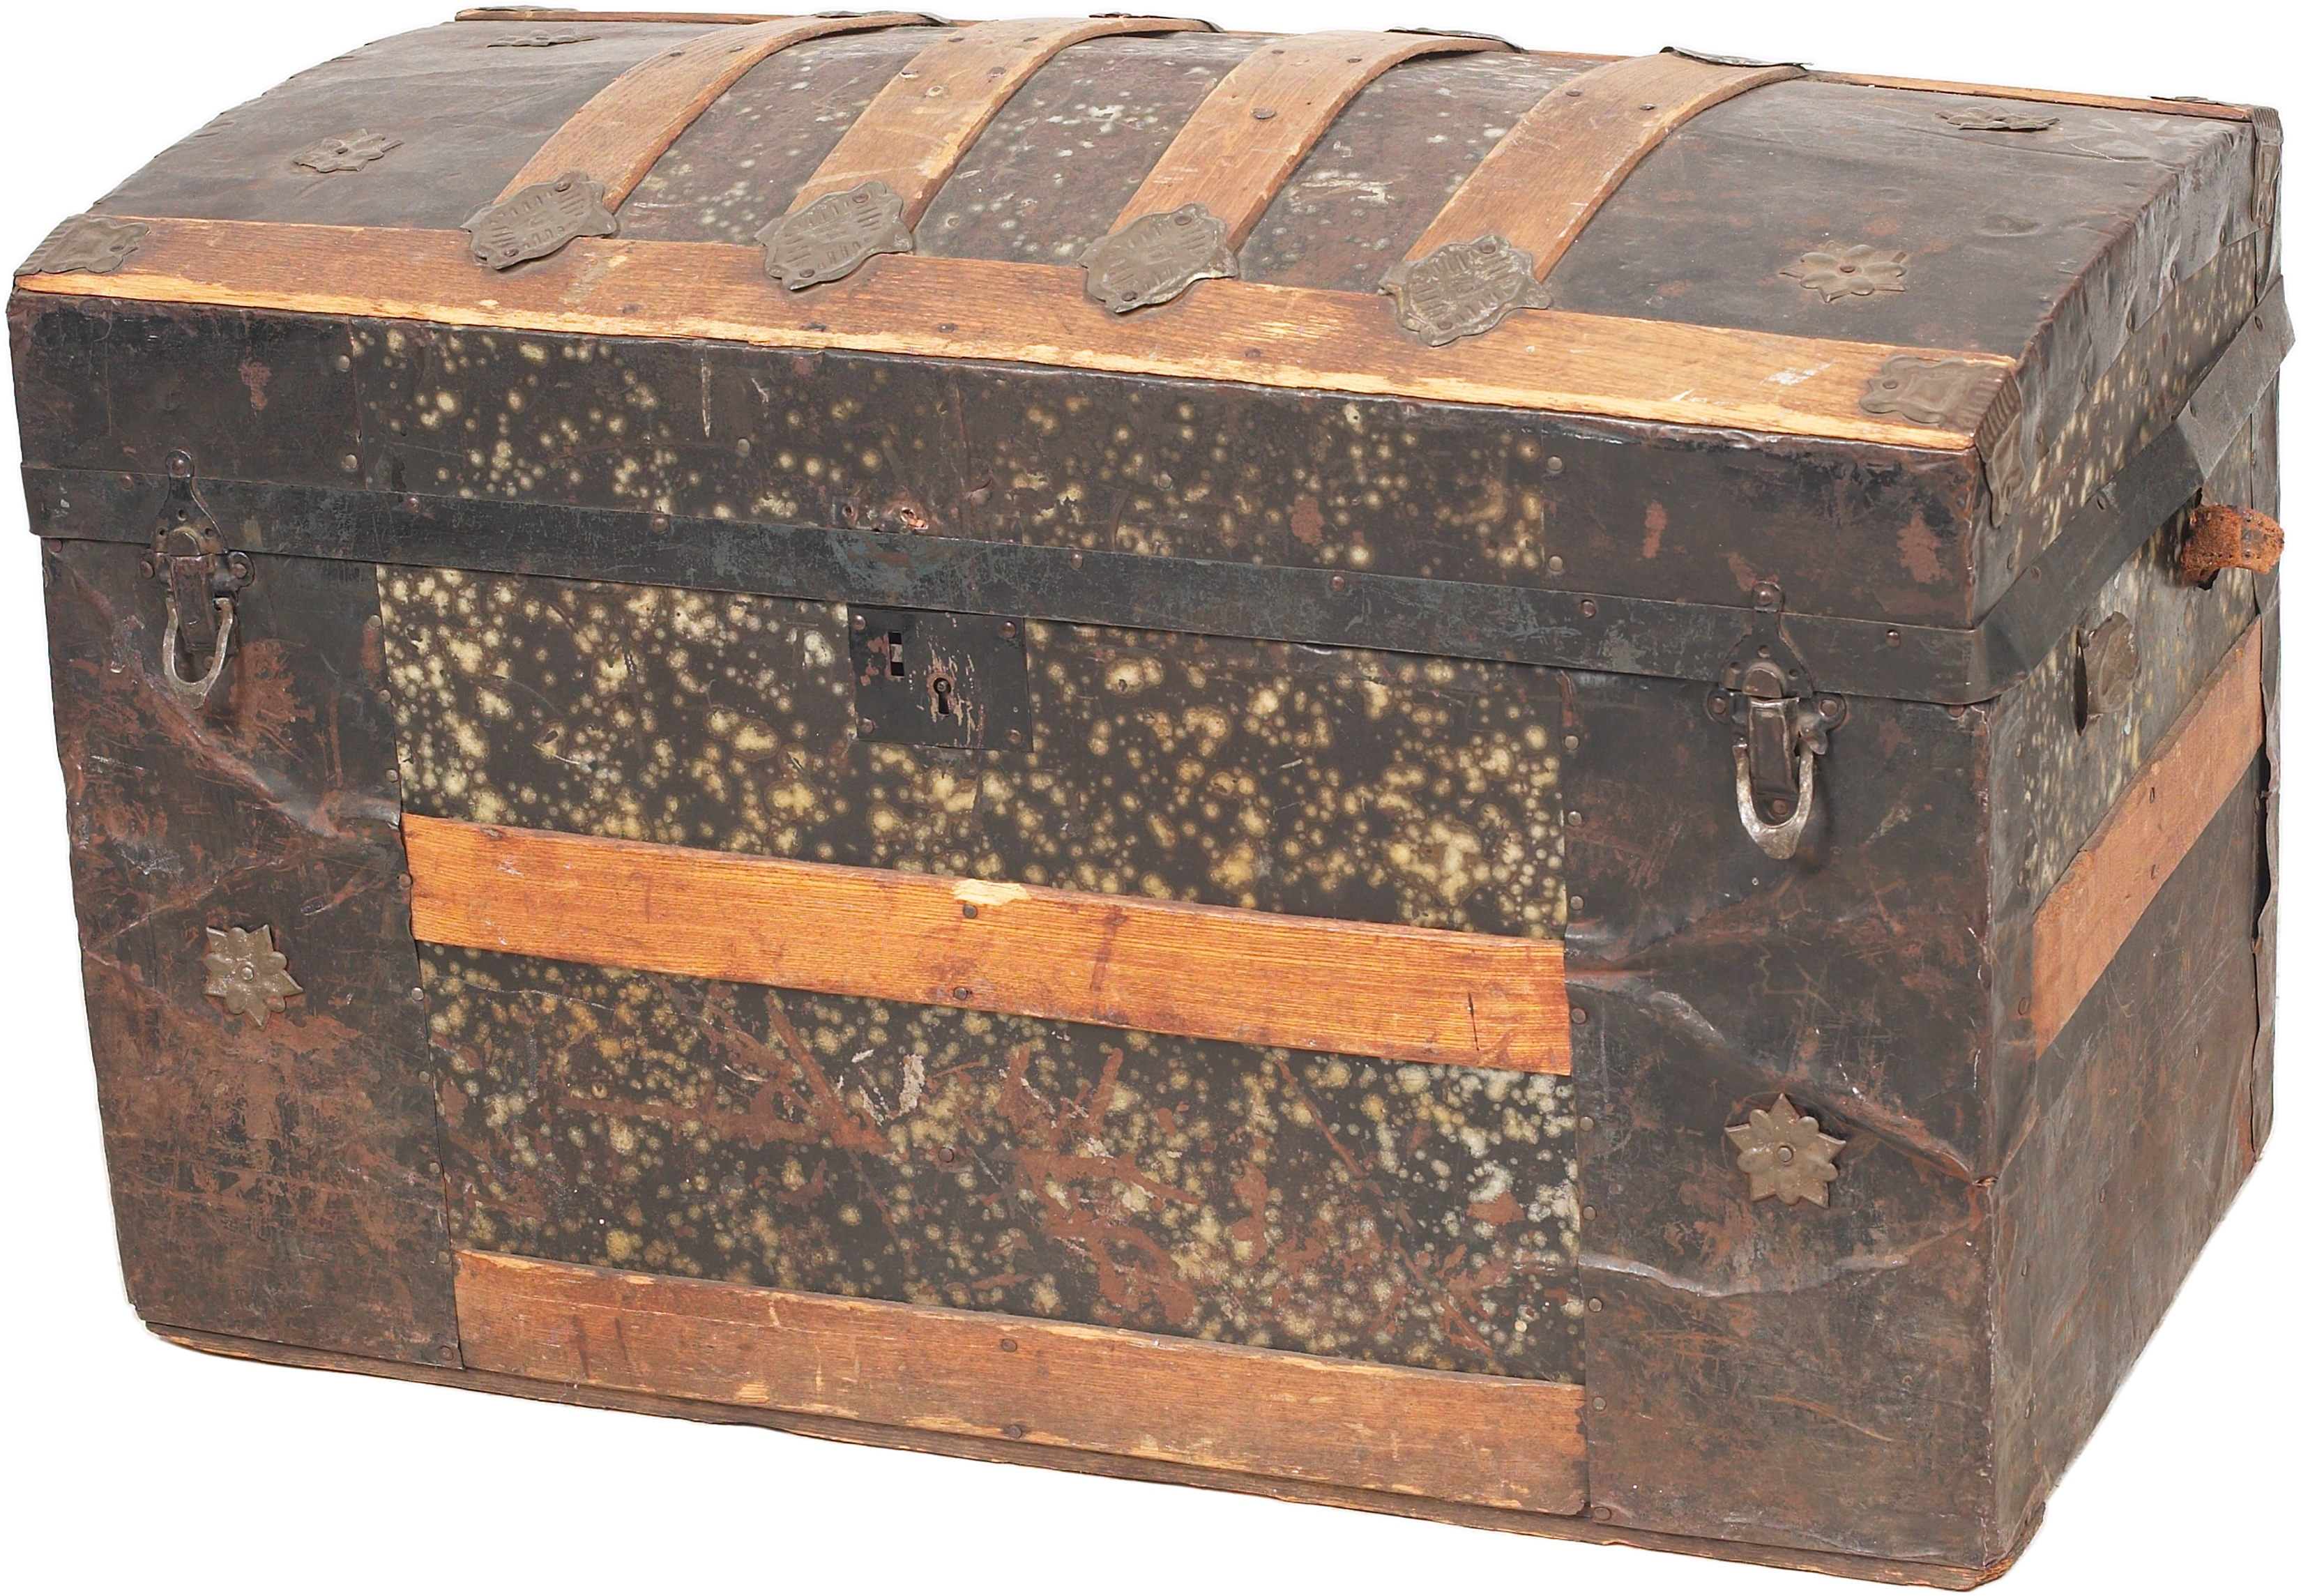 Dating old steamer trunks | Locked Out Of Your Steamer